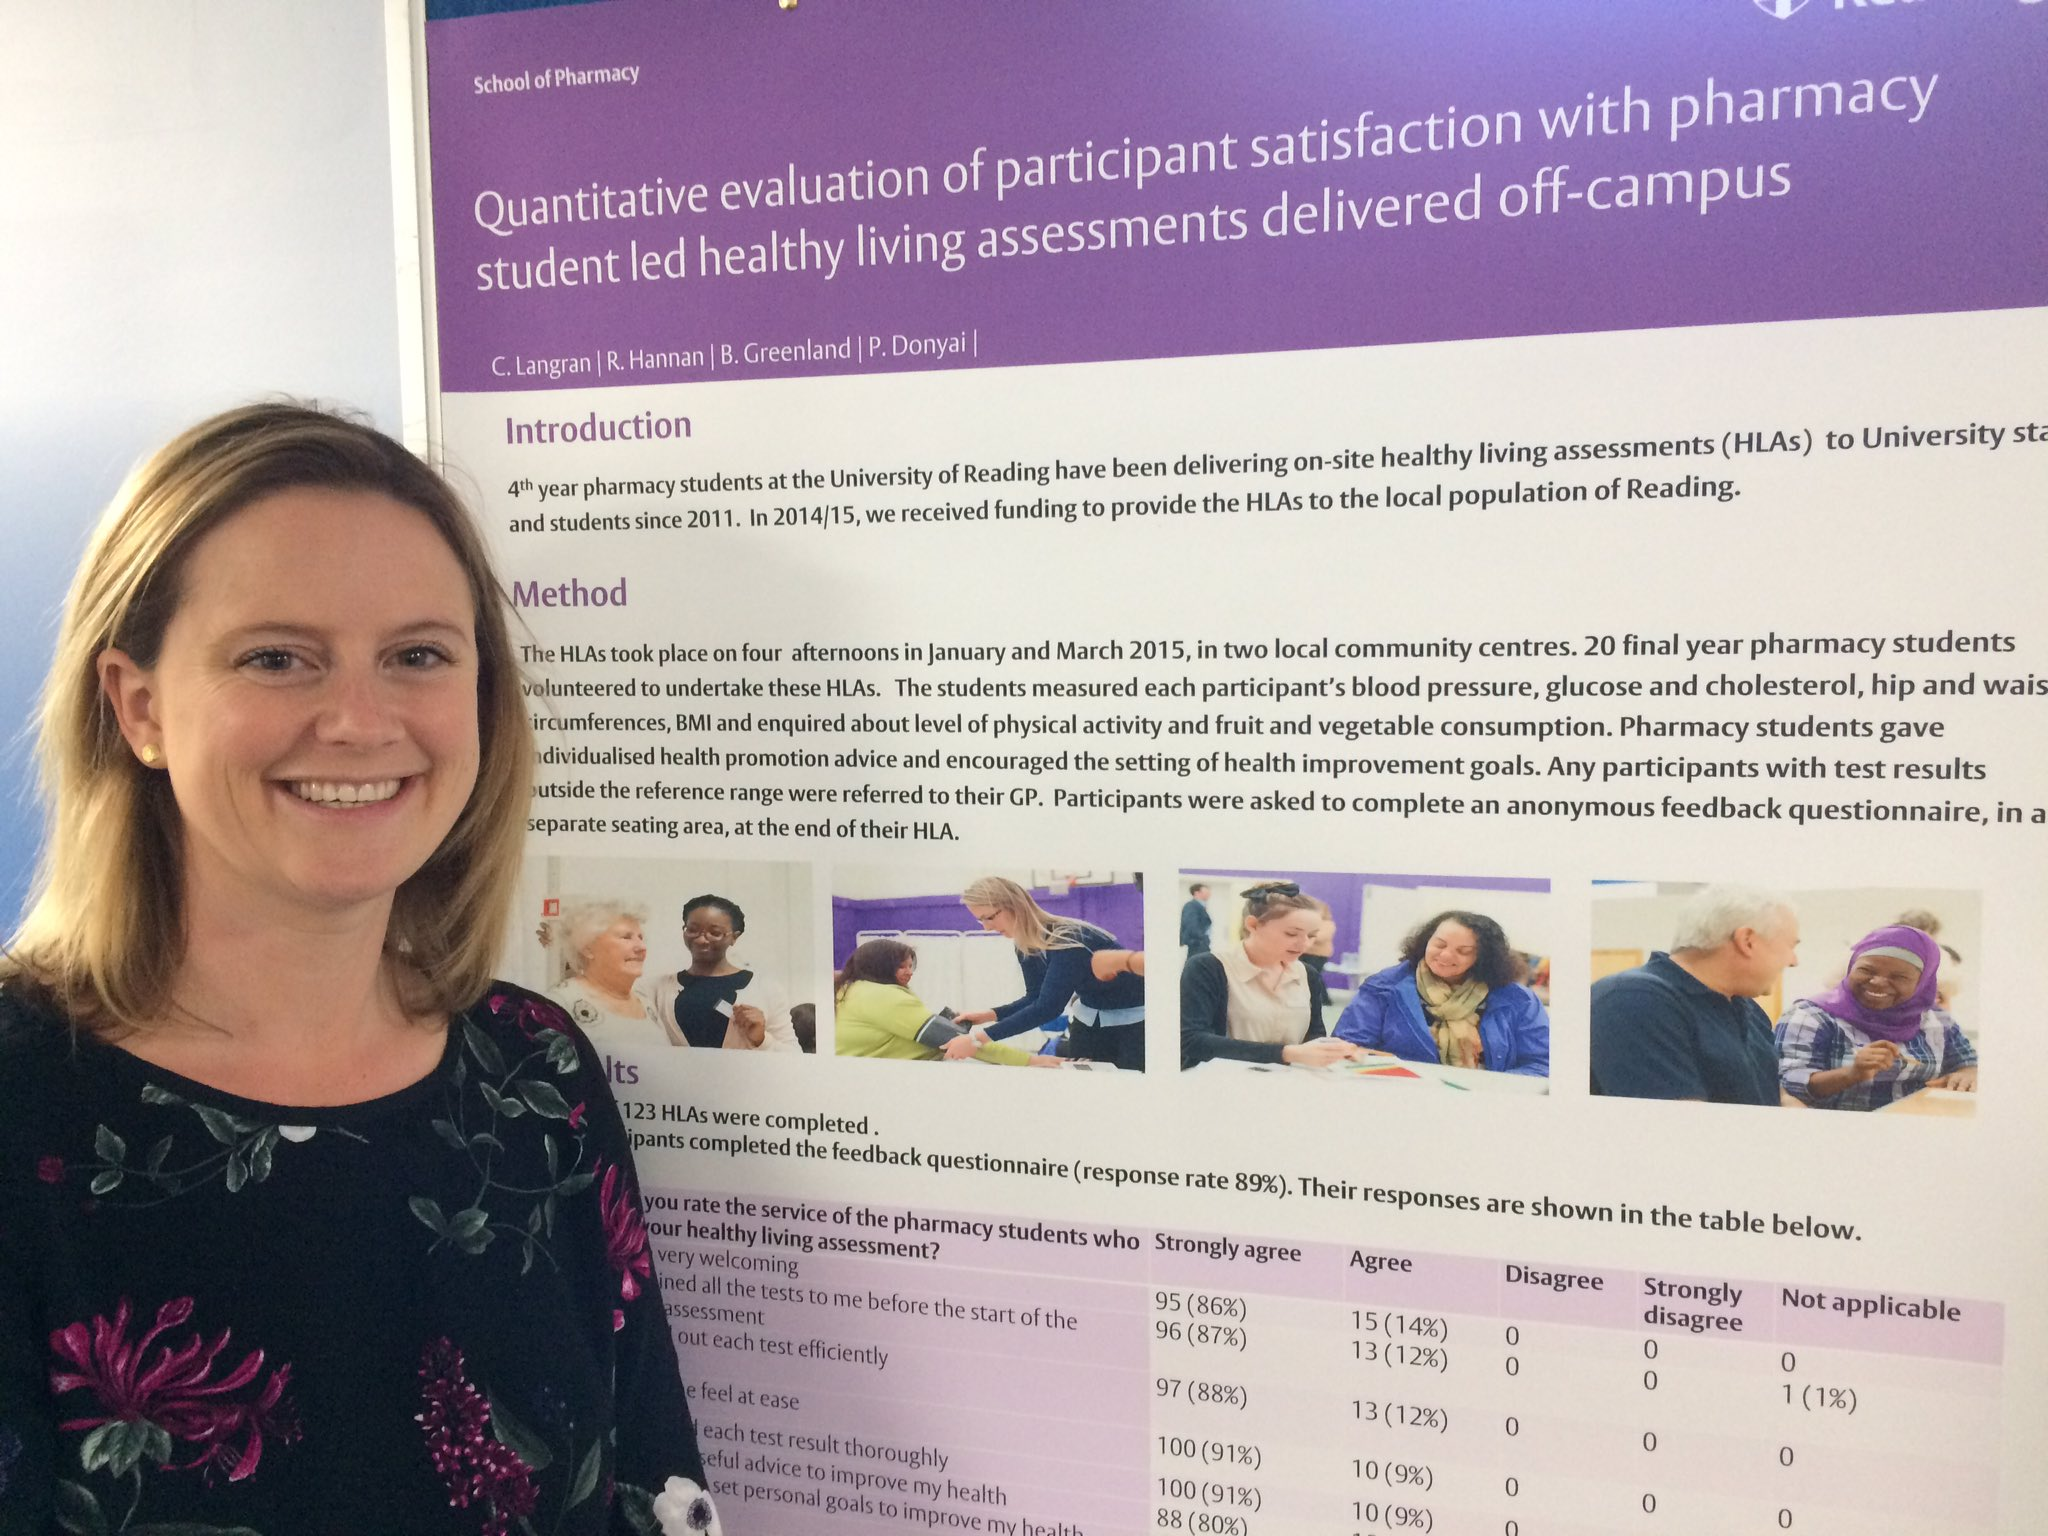 """Healthy Living Assessments delivered by pharmacy students rated as """"outstanding""""  #hsrpp2017 @UniofReading https://t.co/ibv4igmjtL"""